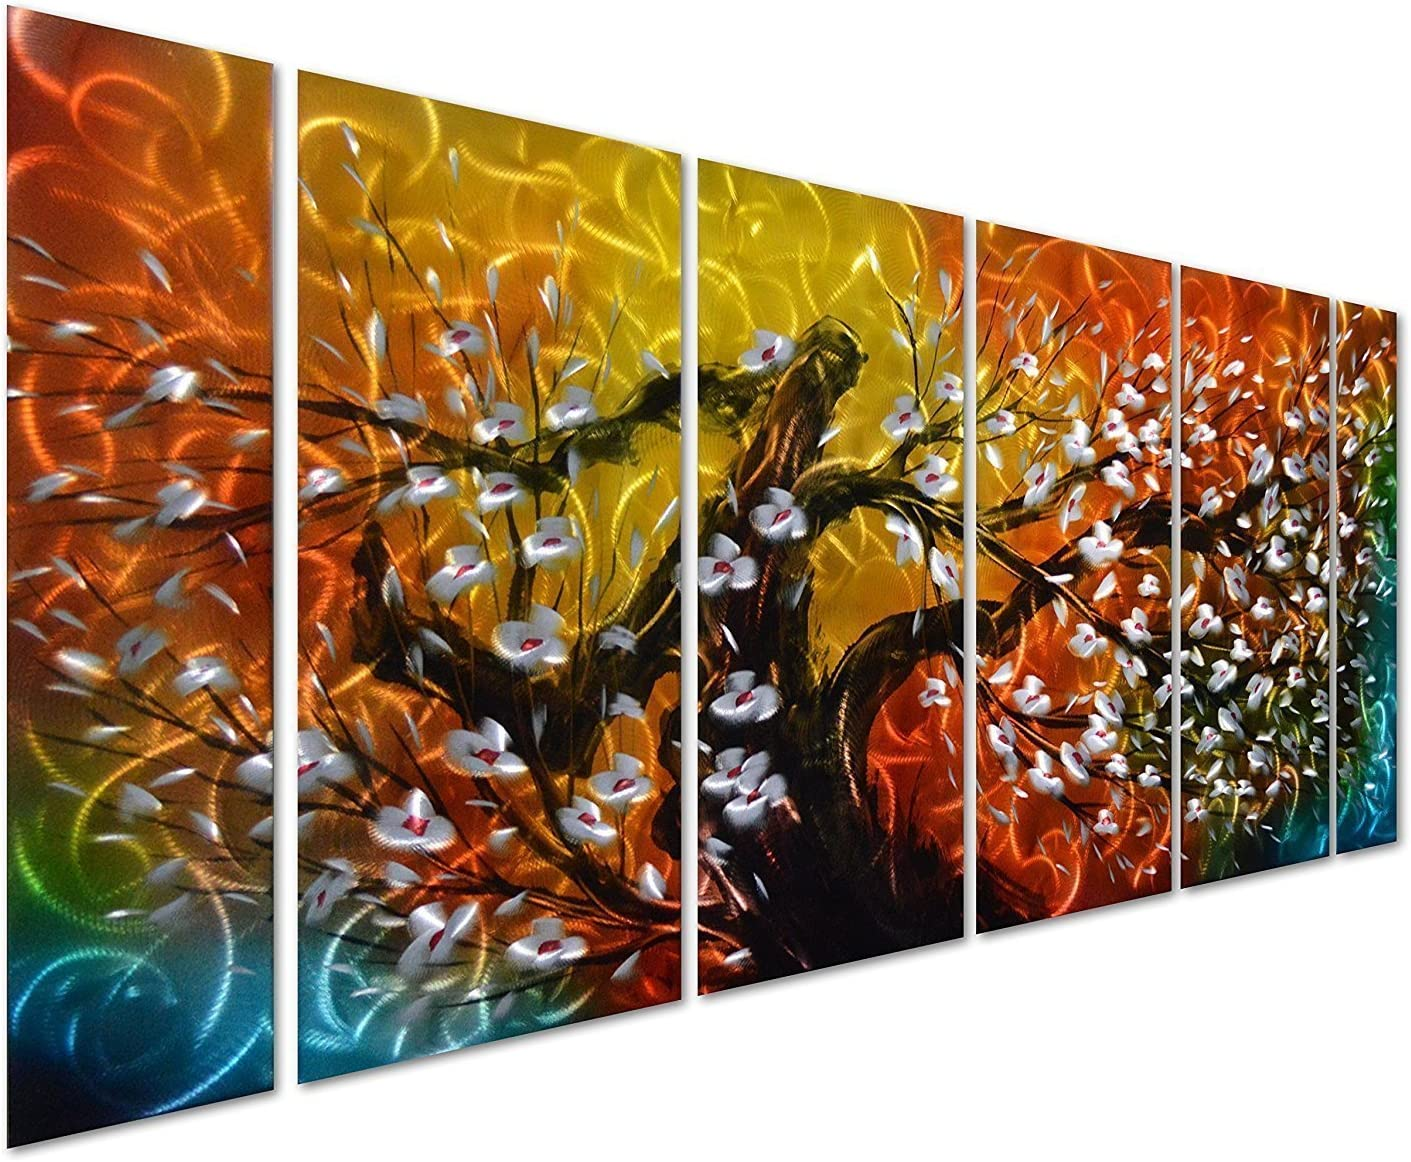 """Pure Art Gigantic Tree of Life Metal Wall Art Decor, Colorful 3D Artwork for Modern, Contemporary and Traditional Decor, 6-Panels Measures 24""""x 65"""", Abstract Great for Indoor and Outdoor Rooms"""